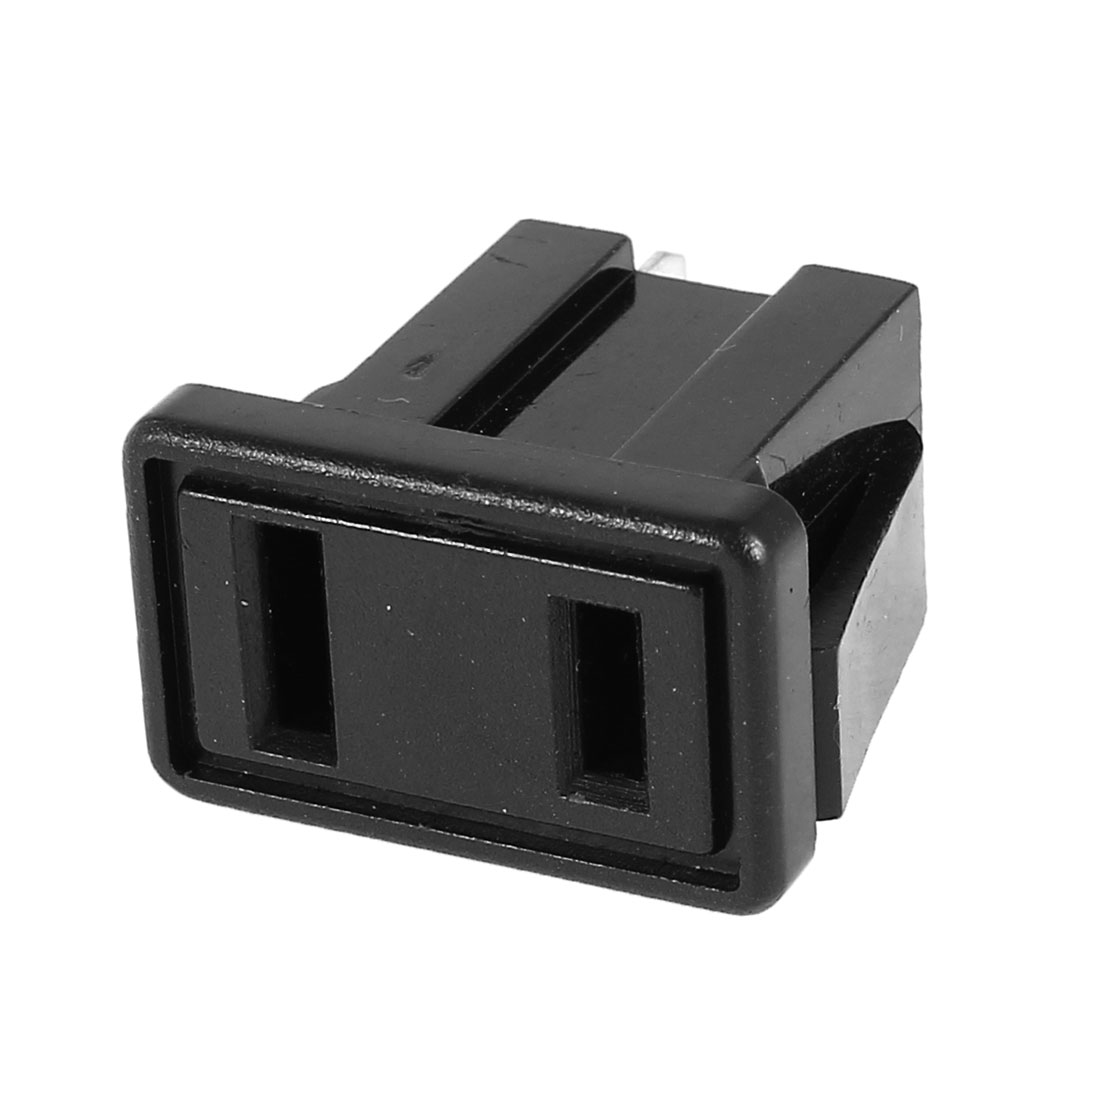 AC 125V 15A IEC 320 C9 Female Outlet Power Socket Clamp Type Adapter